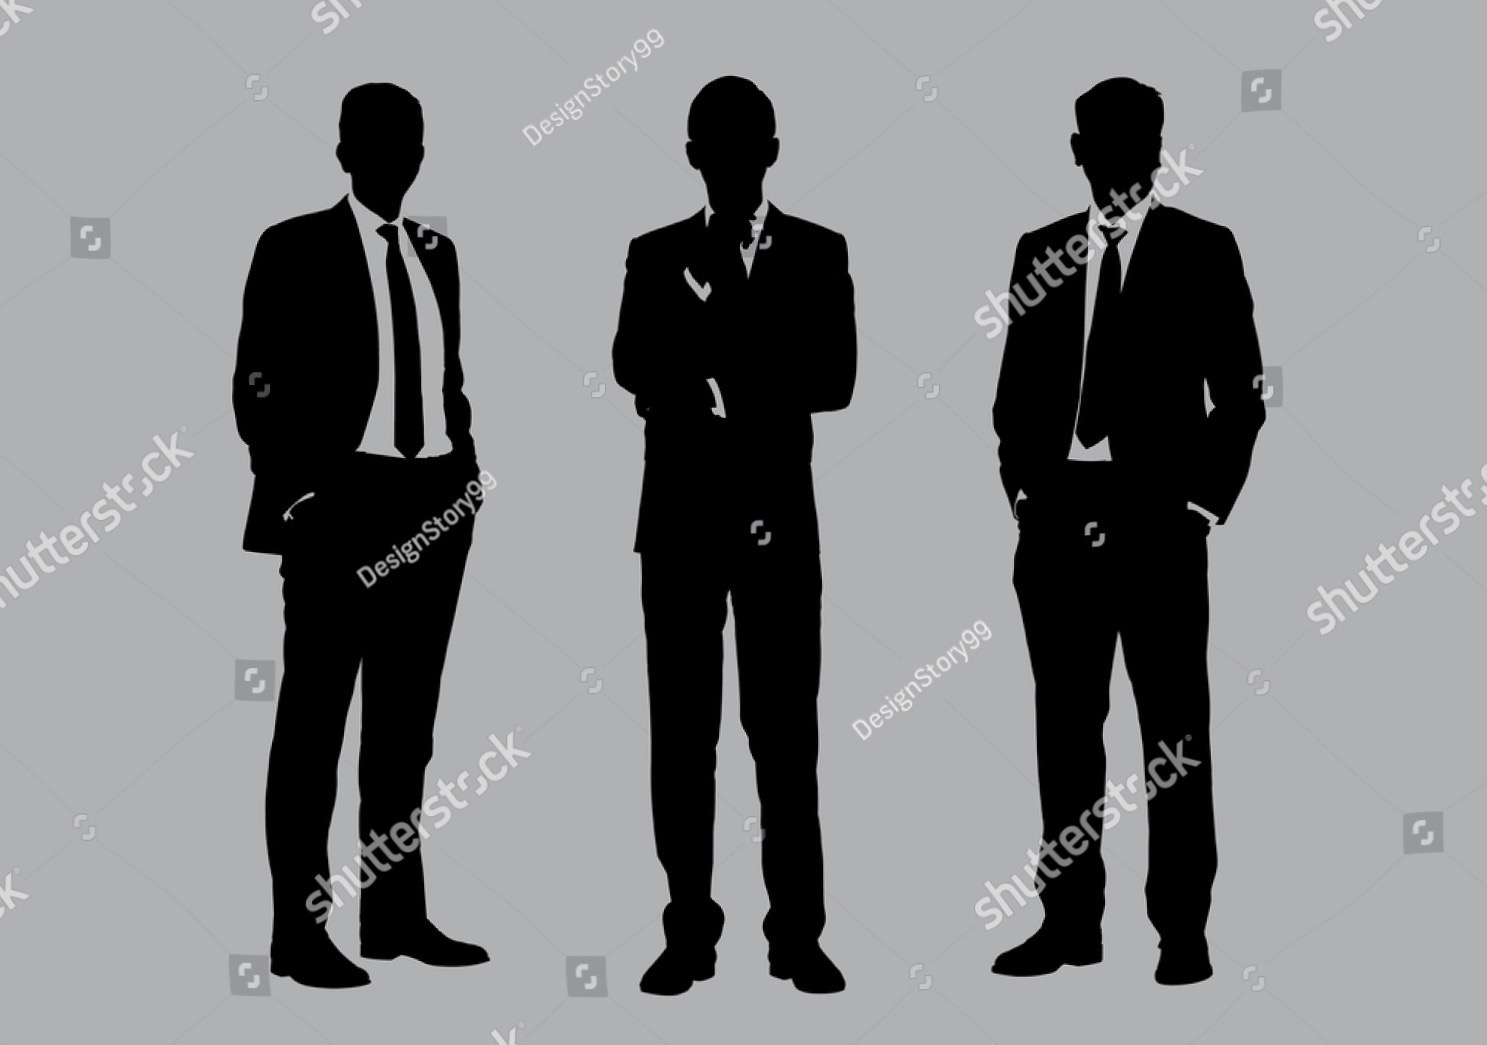 stock-vector-business-people-group-silhouettes-pose-on-grey-background-flat-line-vector-and-illustration-1729201927